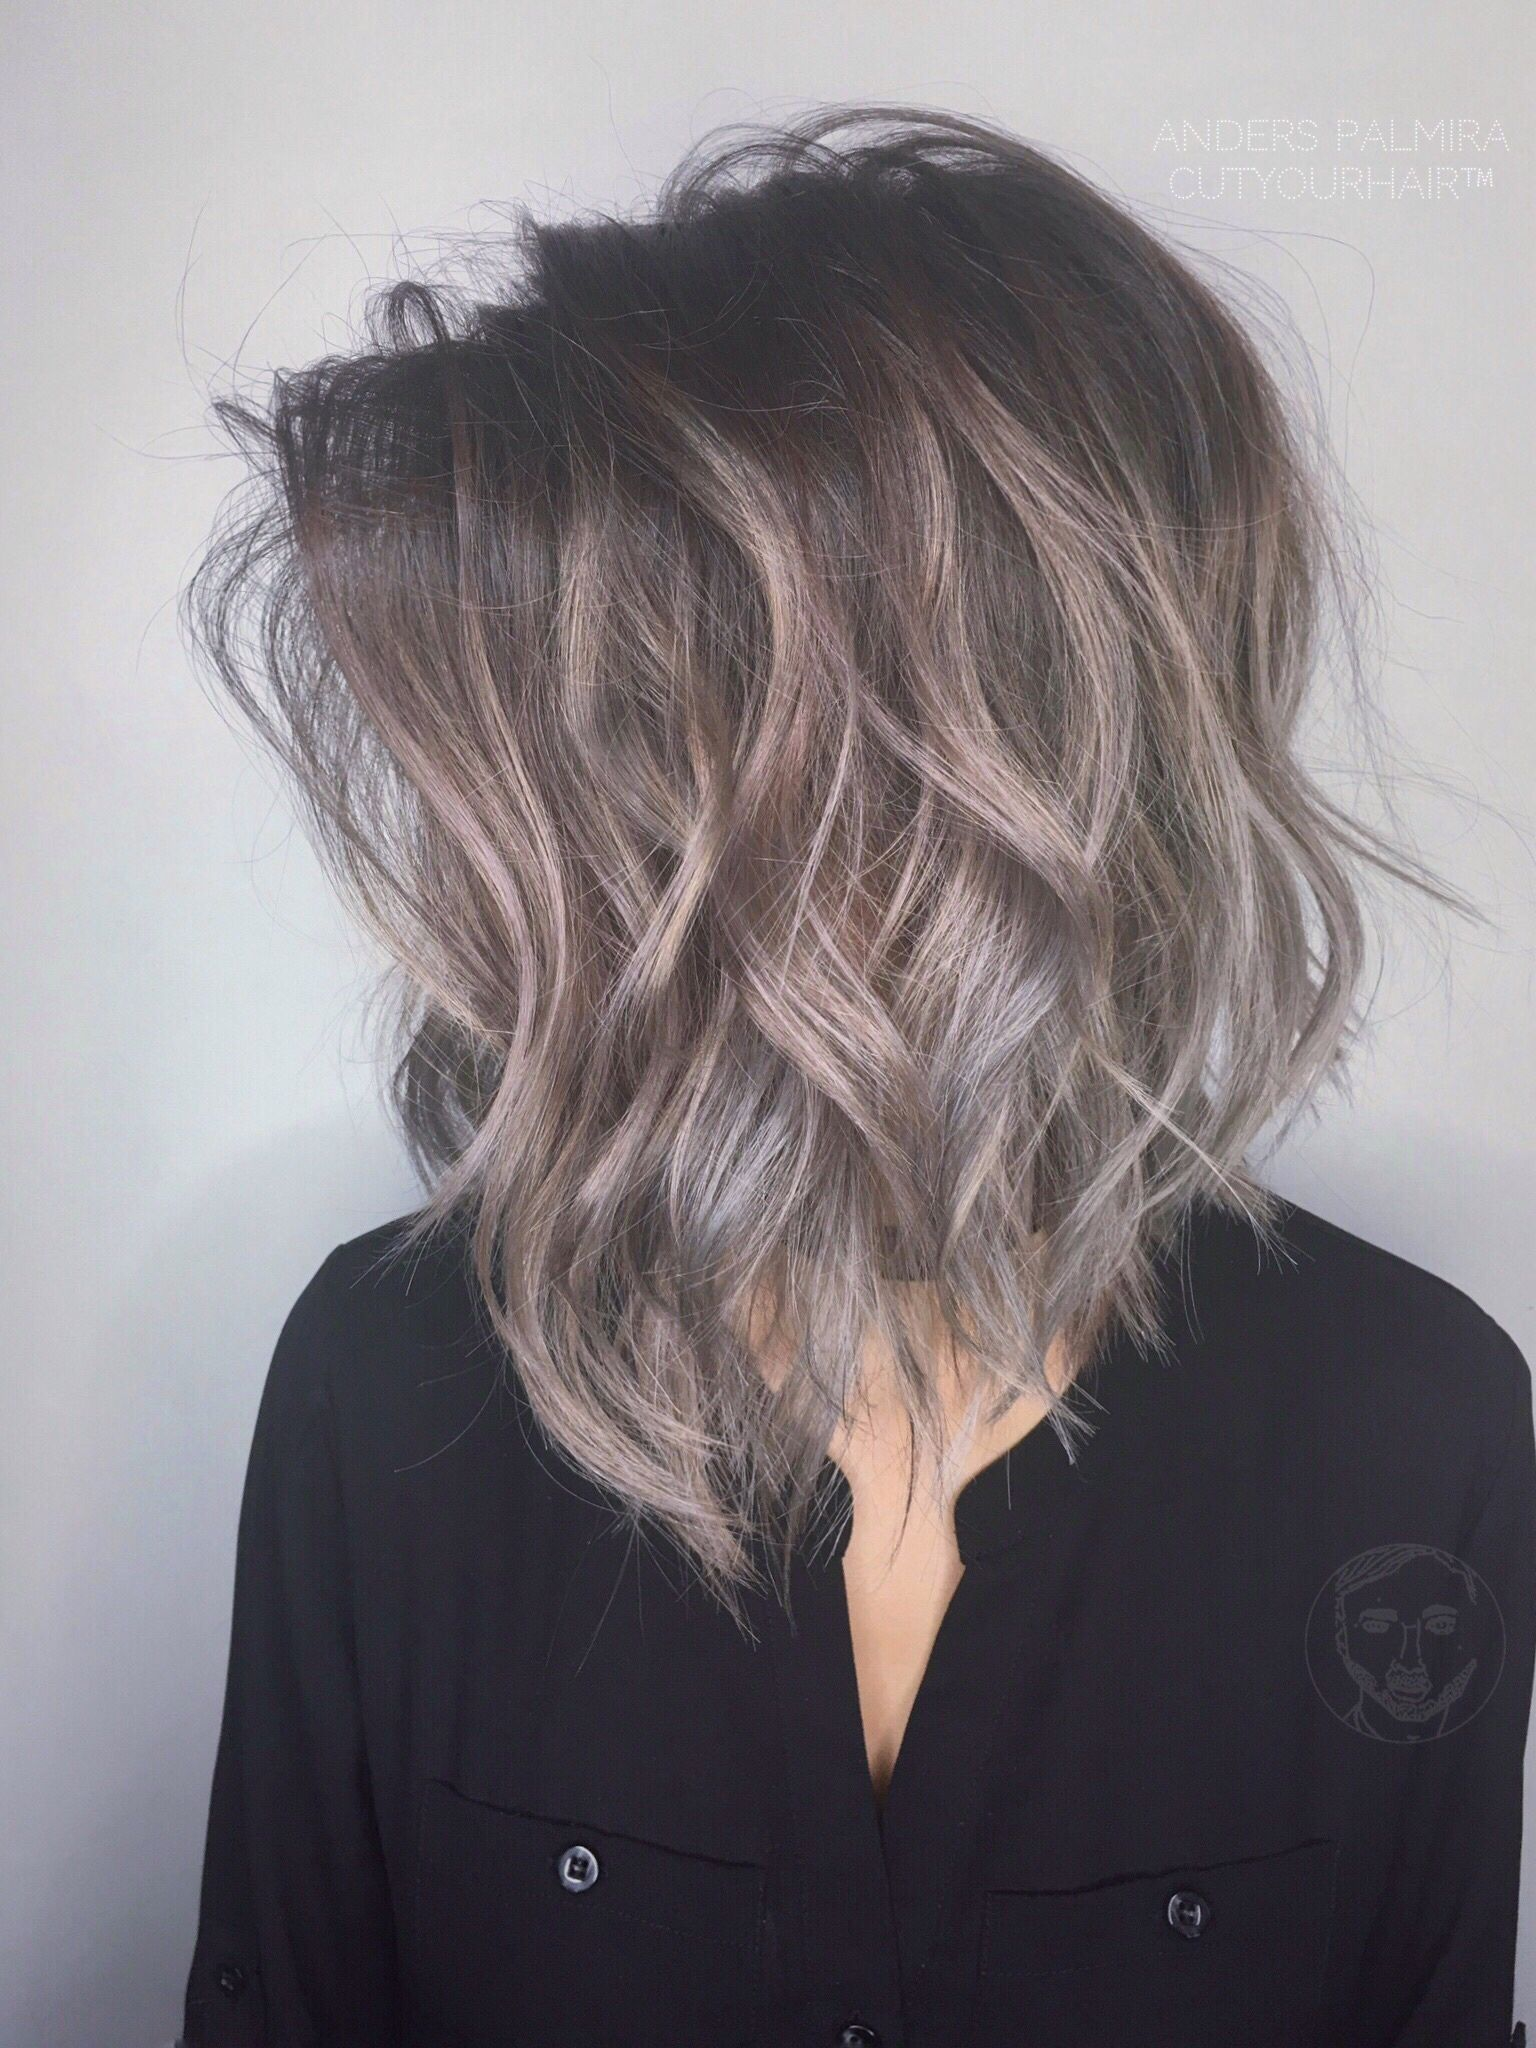 Are You Searching For Beach Wavy Hairstyles For Medium Length Hair Ideas?  We Have A Collection Of Chic Beach Wavy Hairstyles And Some Styling Tricks.